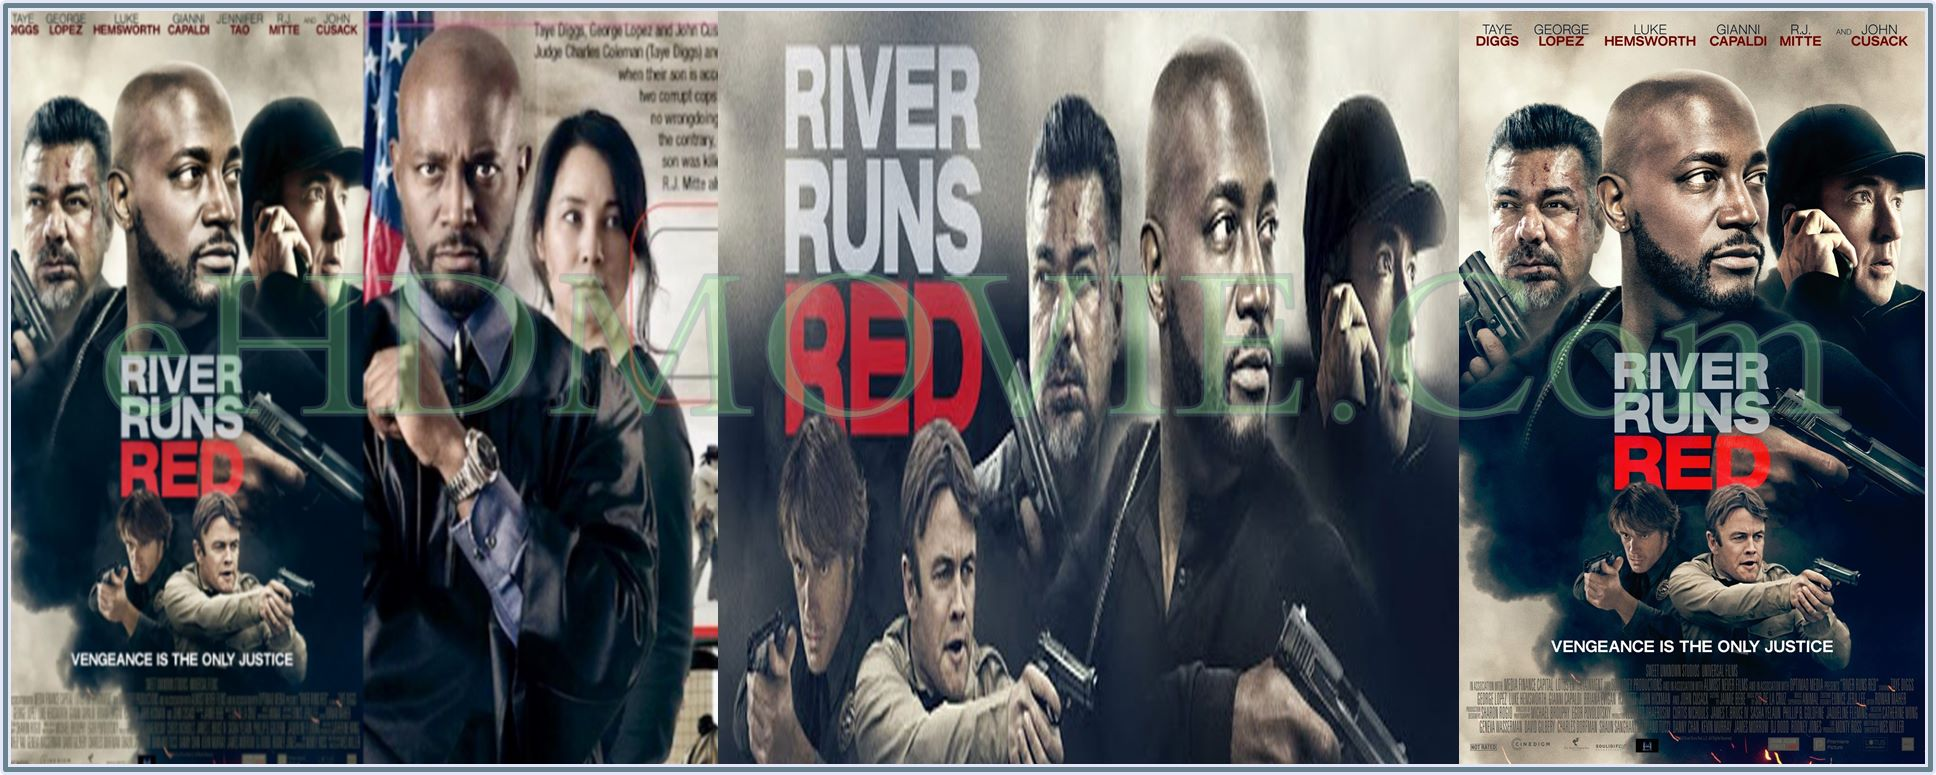 River Runs Red 2018 Full Movie English 720p - 480p ORG BRRip 350MB - 900MB ESubs Free Download